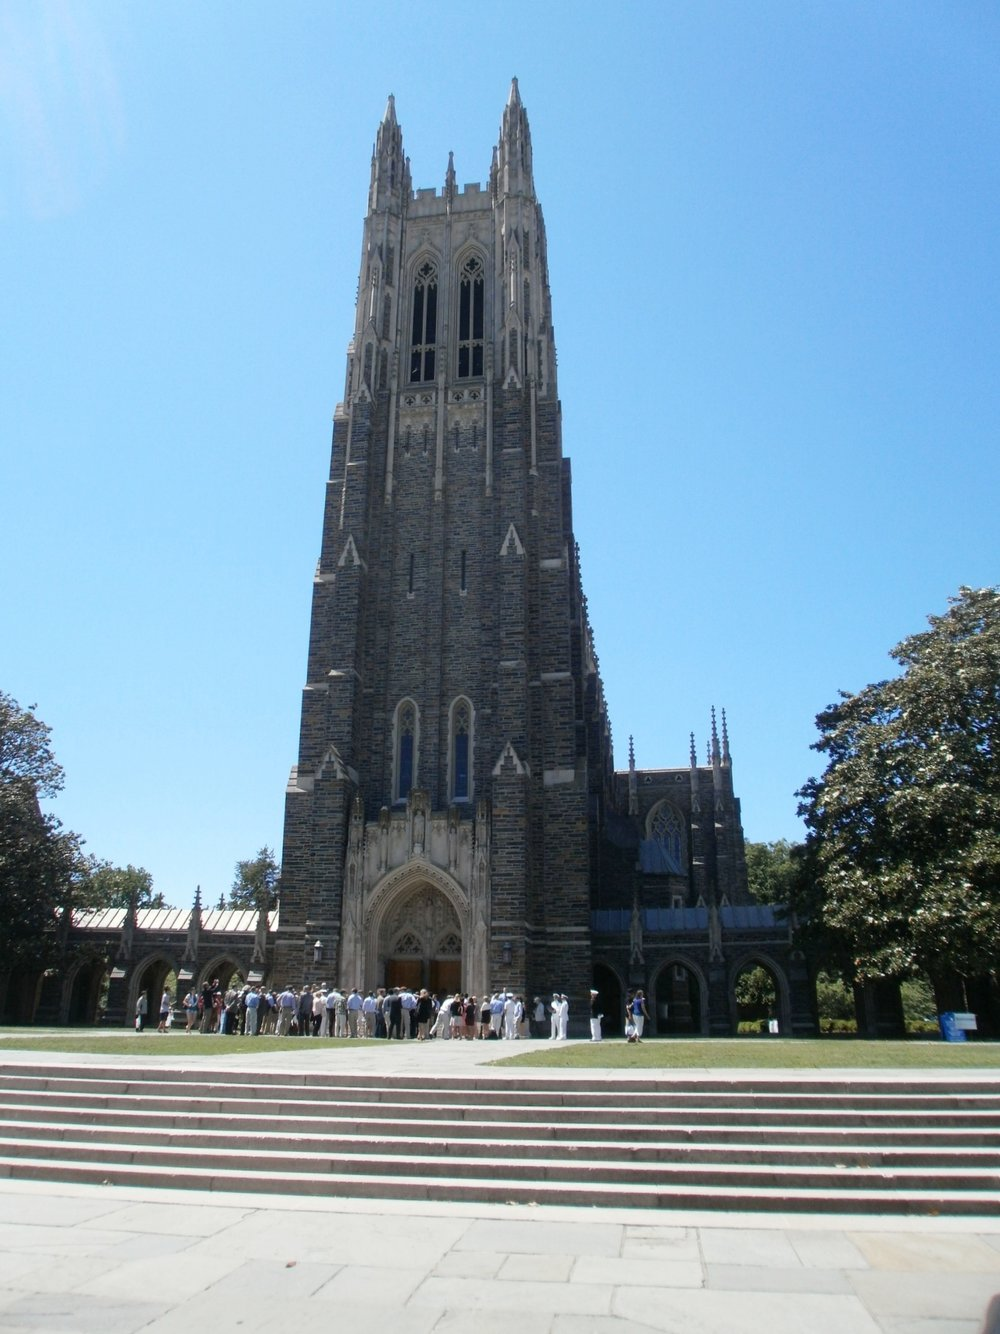 Duke Chapel during graduation. I never went inside nearly enough while I was a student...